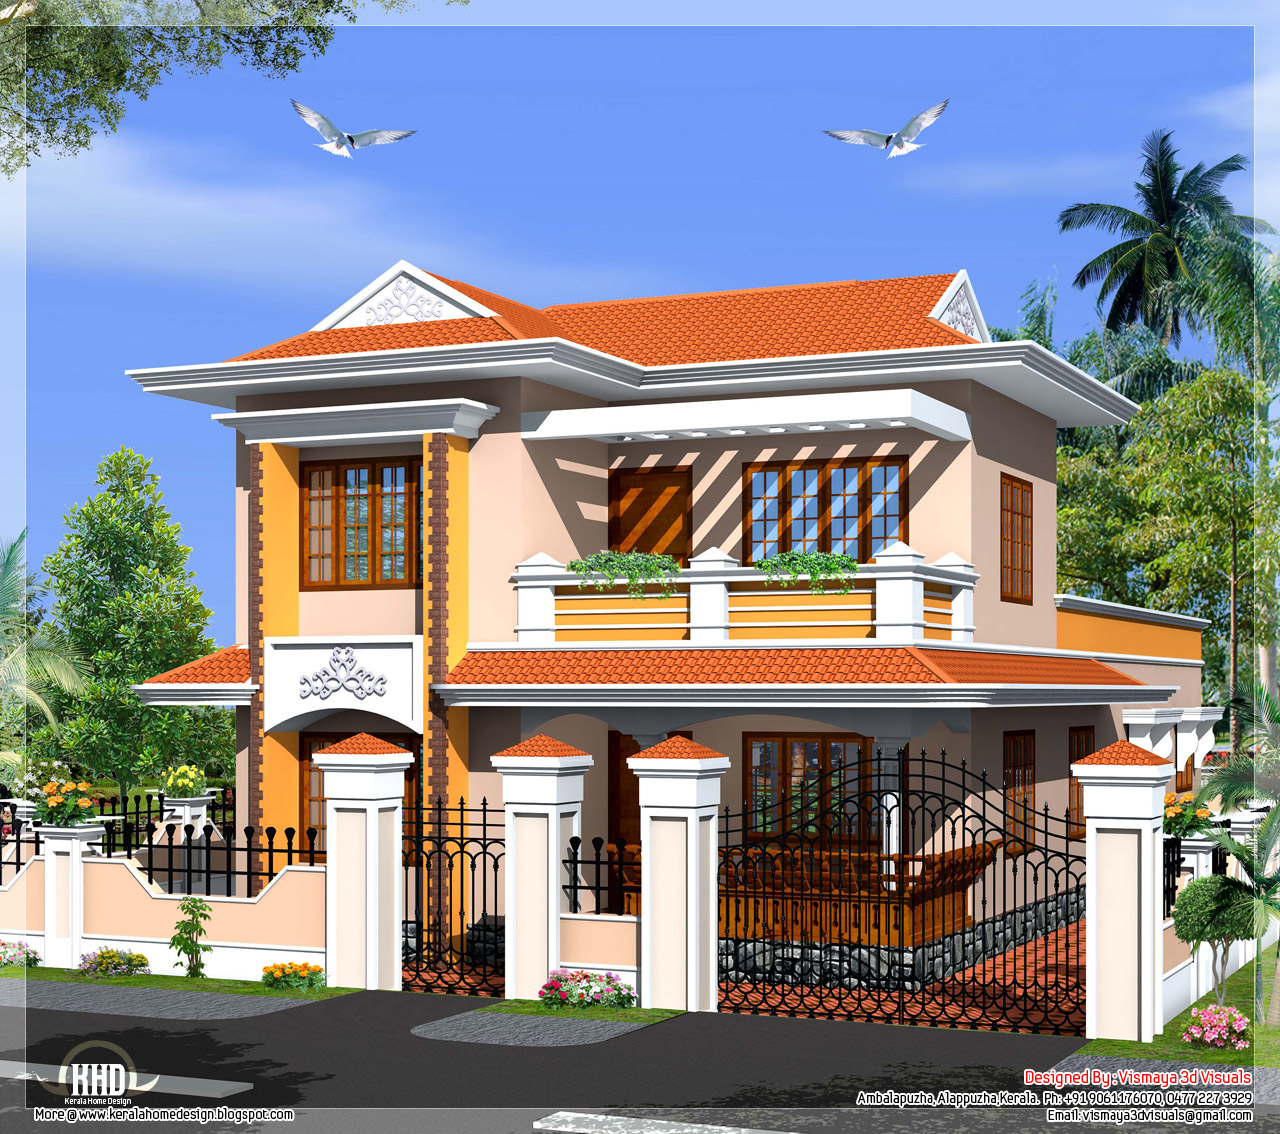 Home Designs October 2012: Kerala Model Villa In 2110 In Square Feet